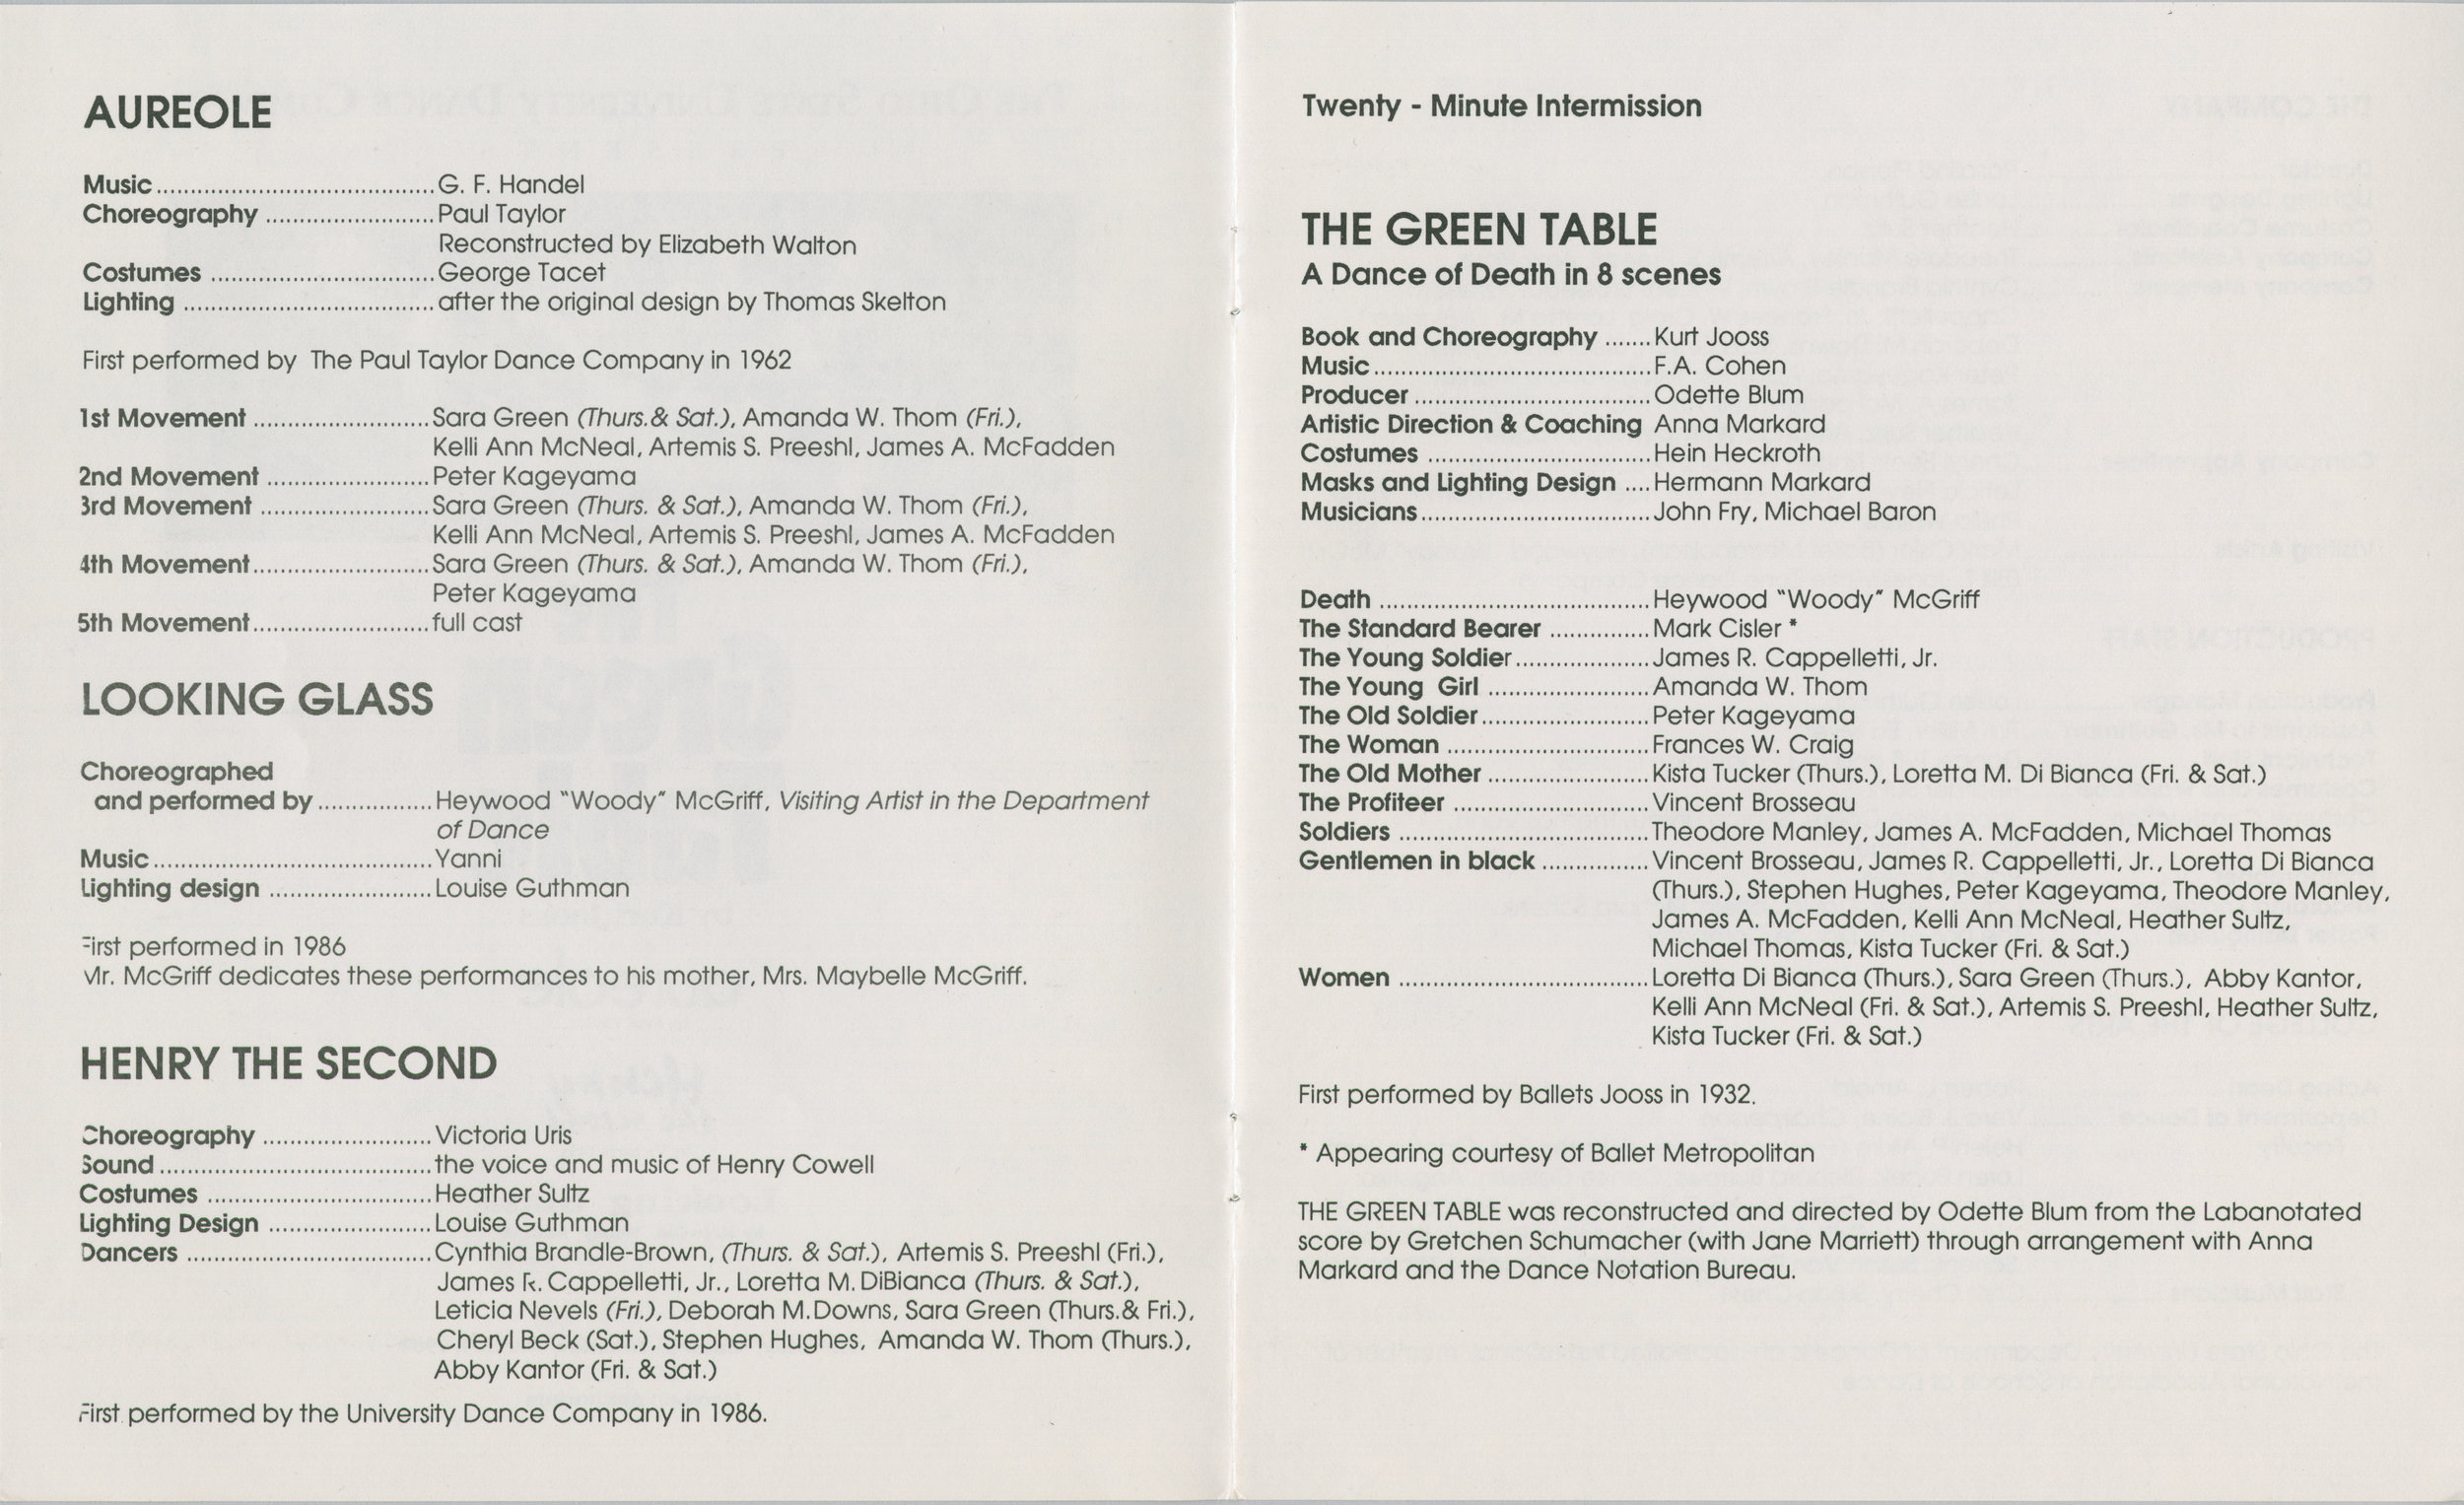 UDC_1988_DancePrograms-004-02.jpg